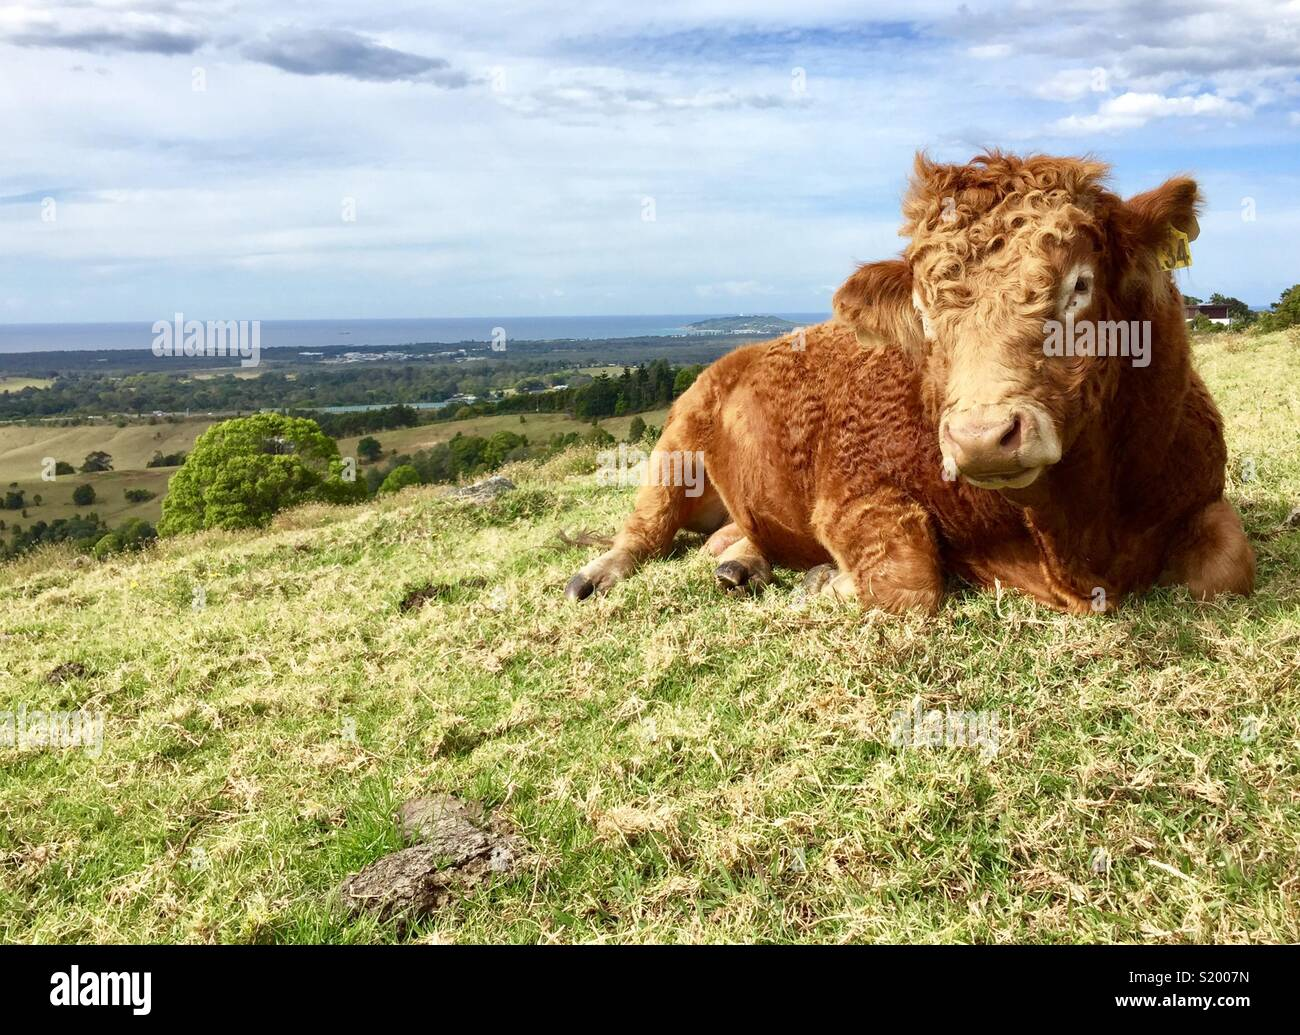 Cow on a hill - Stock Image